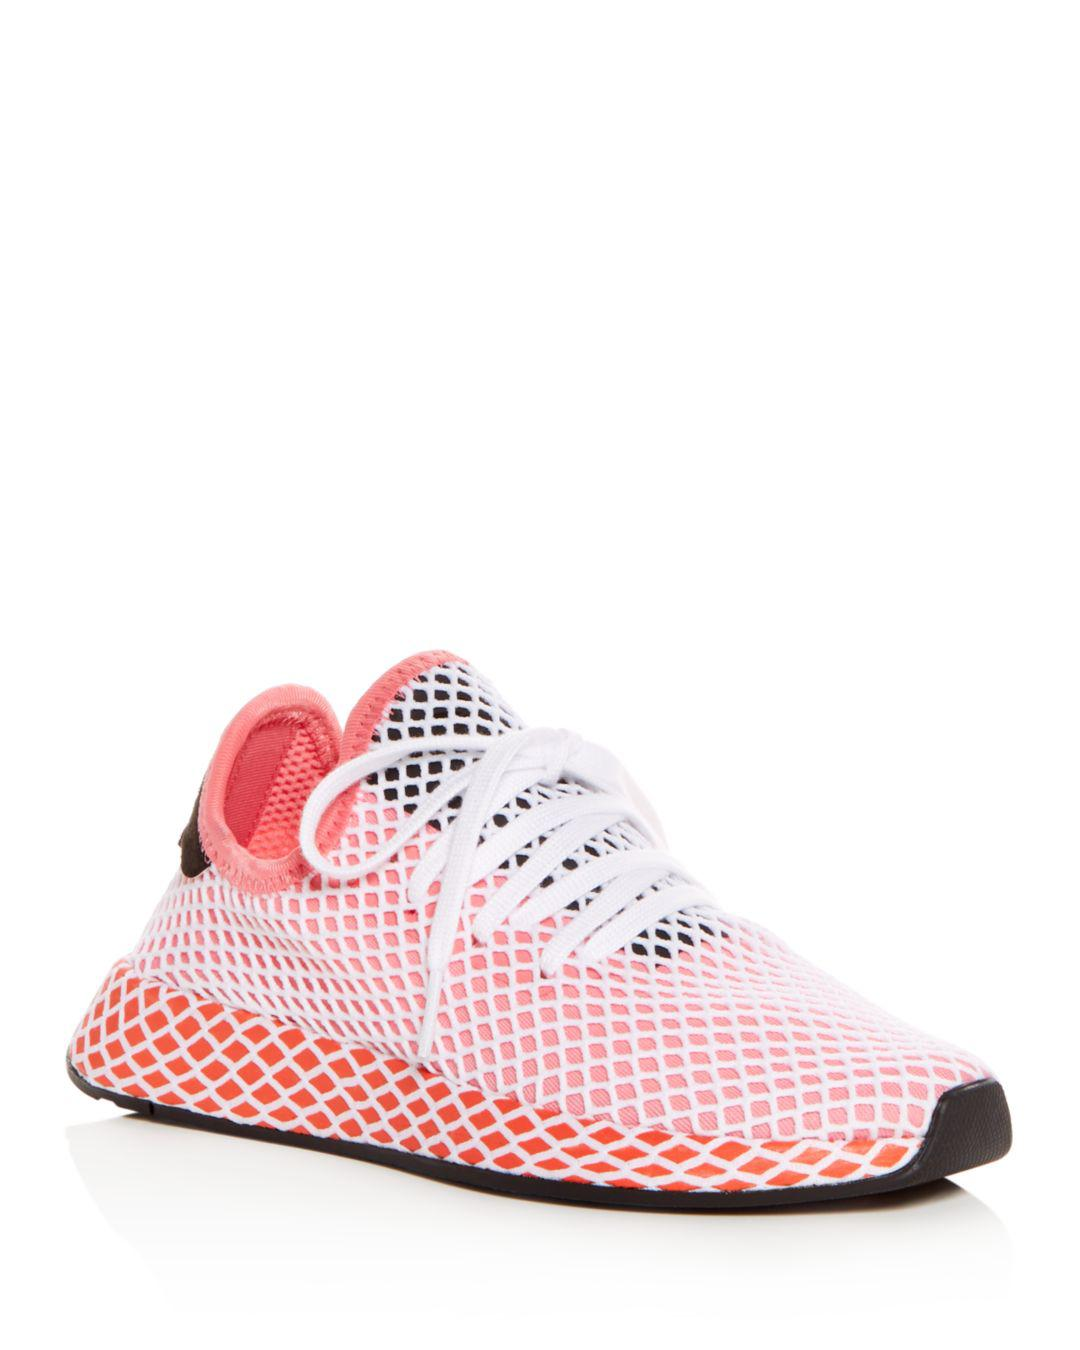 61eaacc5a adidas Women s Deerupt Net Lace Up Sneakers in Pink - Save 52% - Lyst